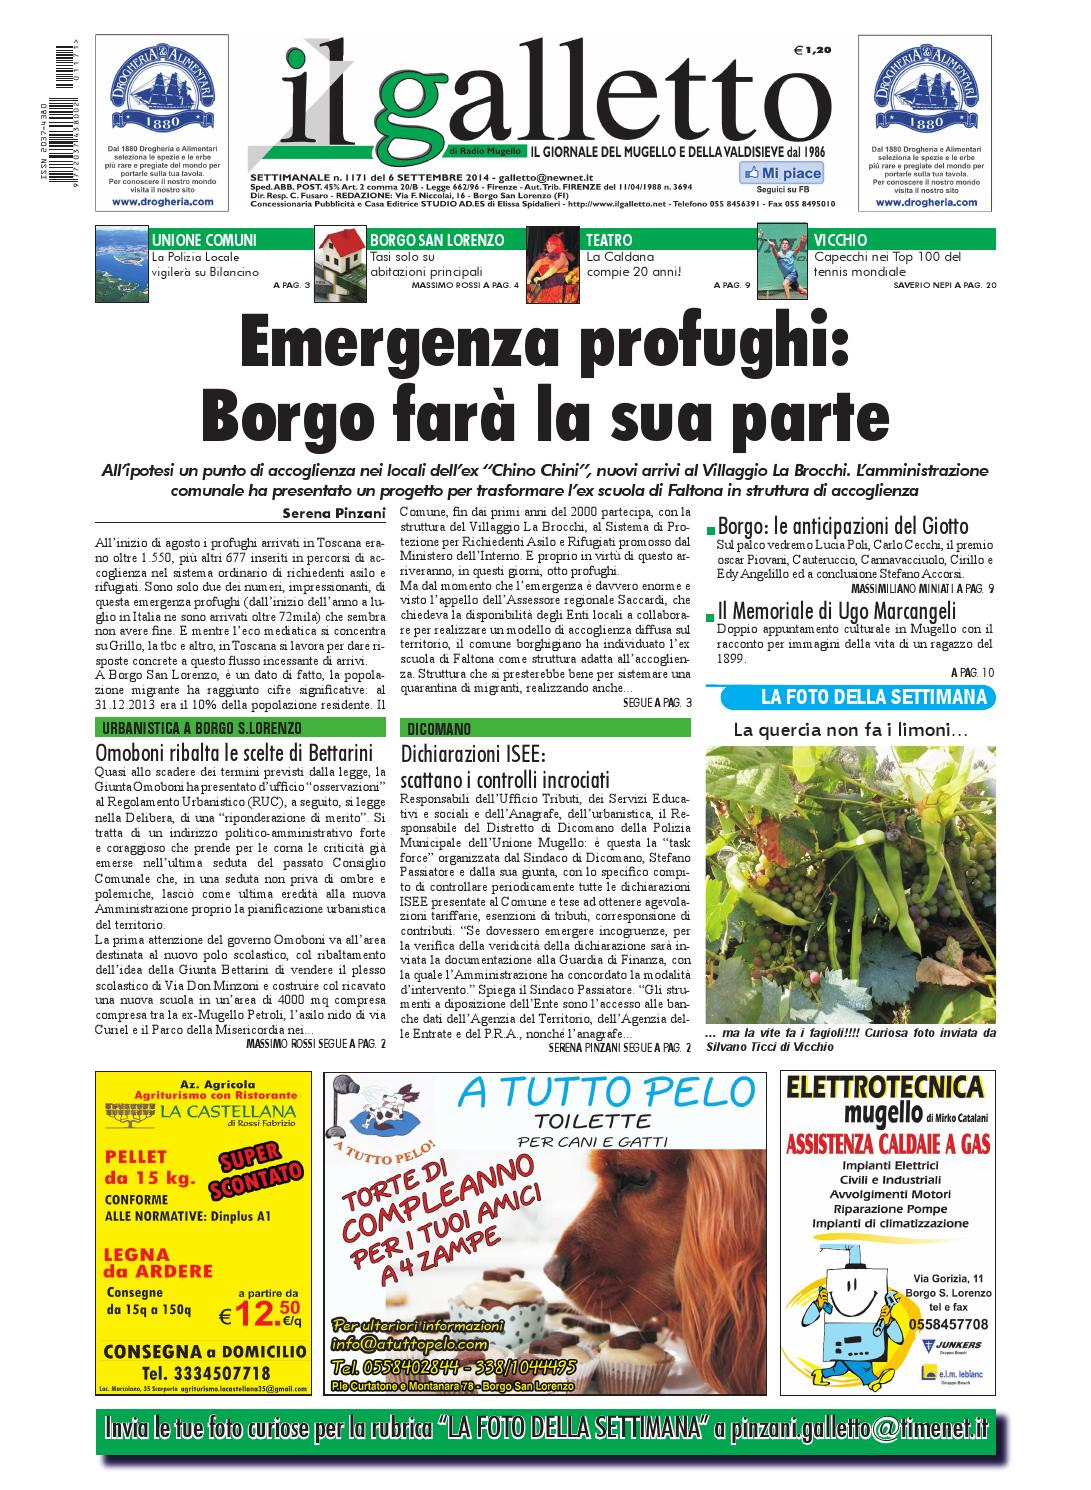 Galletto 1171 del 6 settembre 2014 by Il Galletto Giornale - issuu 8ba3b5fd3f6